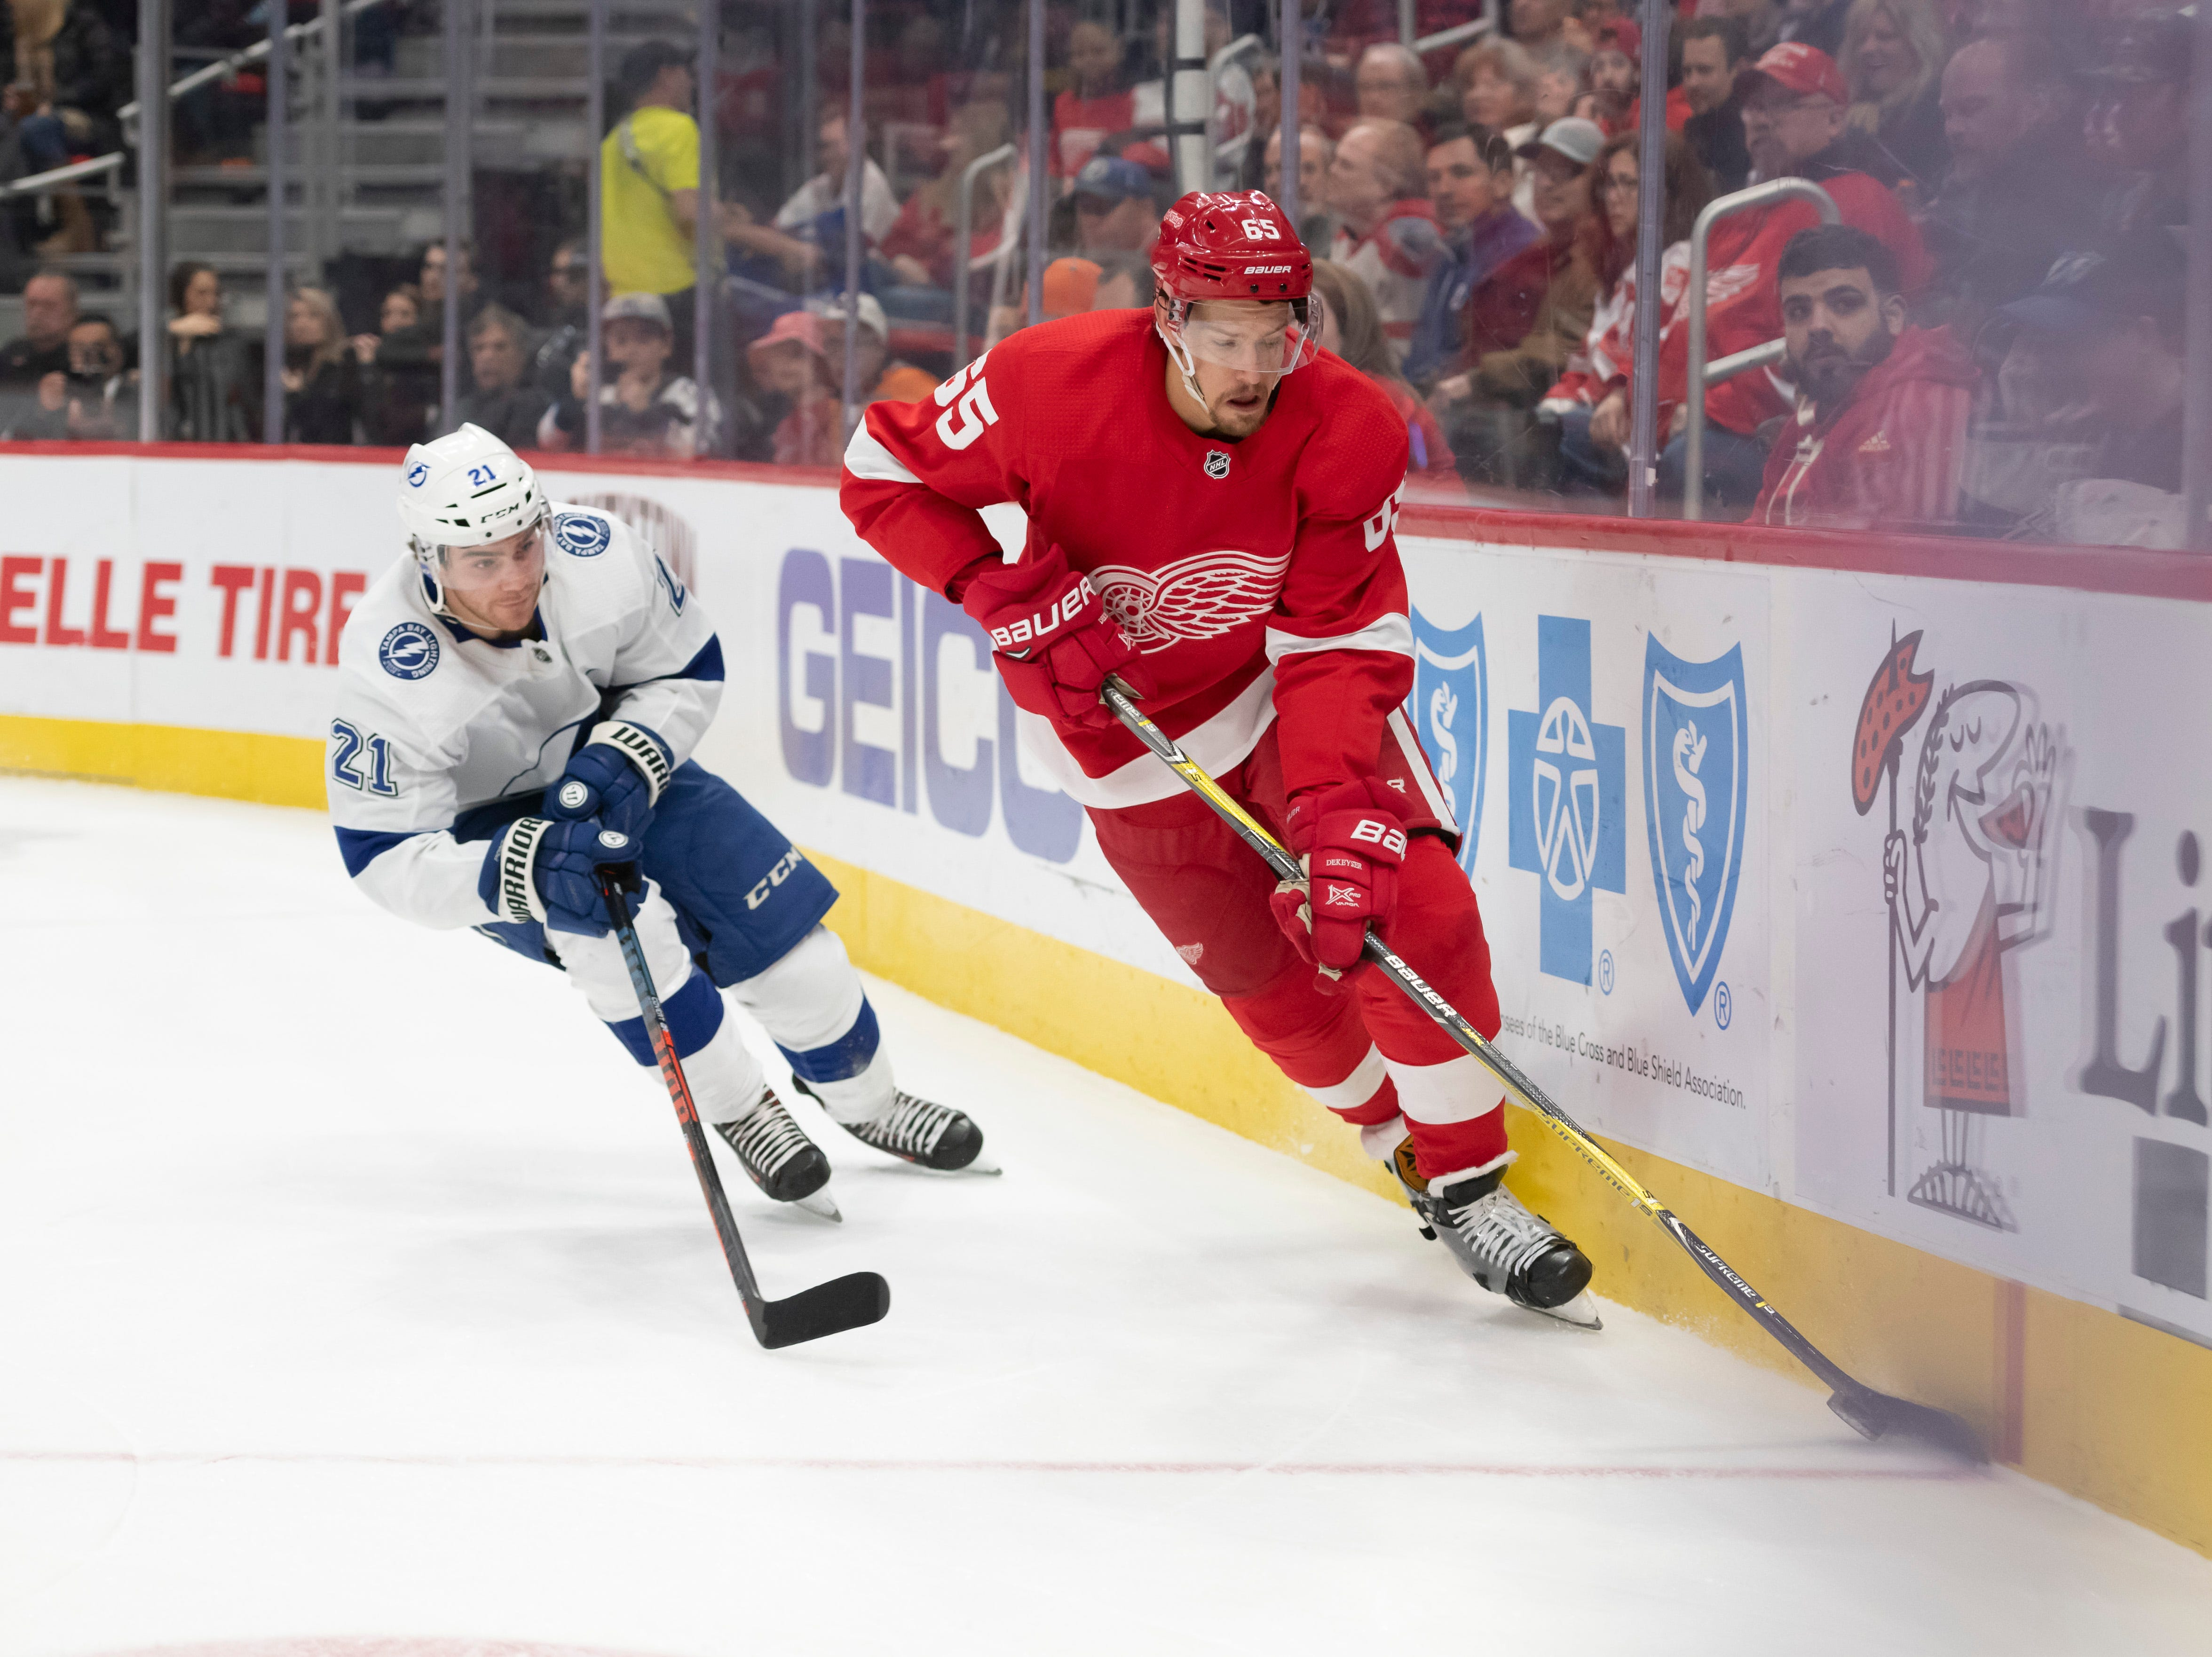 Detroit defenseman Danny DeKeyser keeps the puck away from Tampa Bay center Brayden Point in the second period.        DeKeyser left the game due to an upper body injury later in the period.